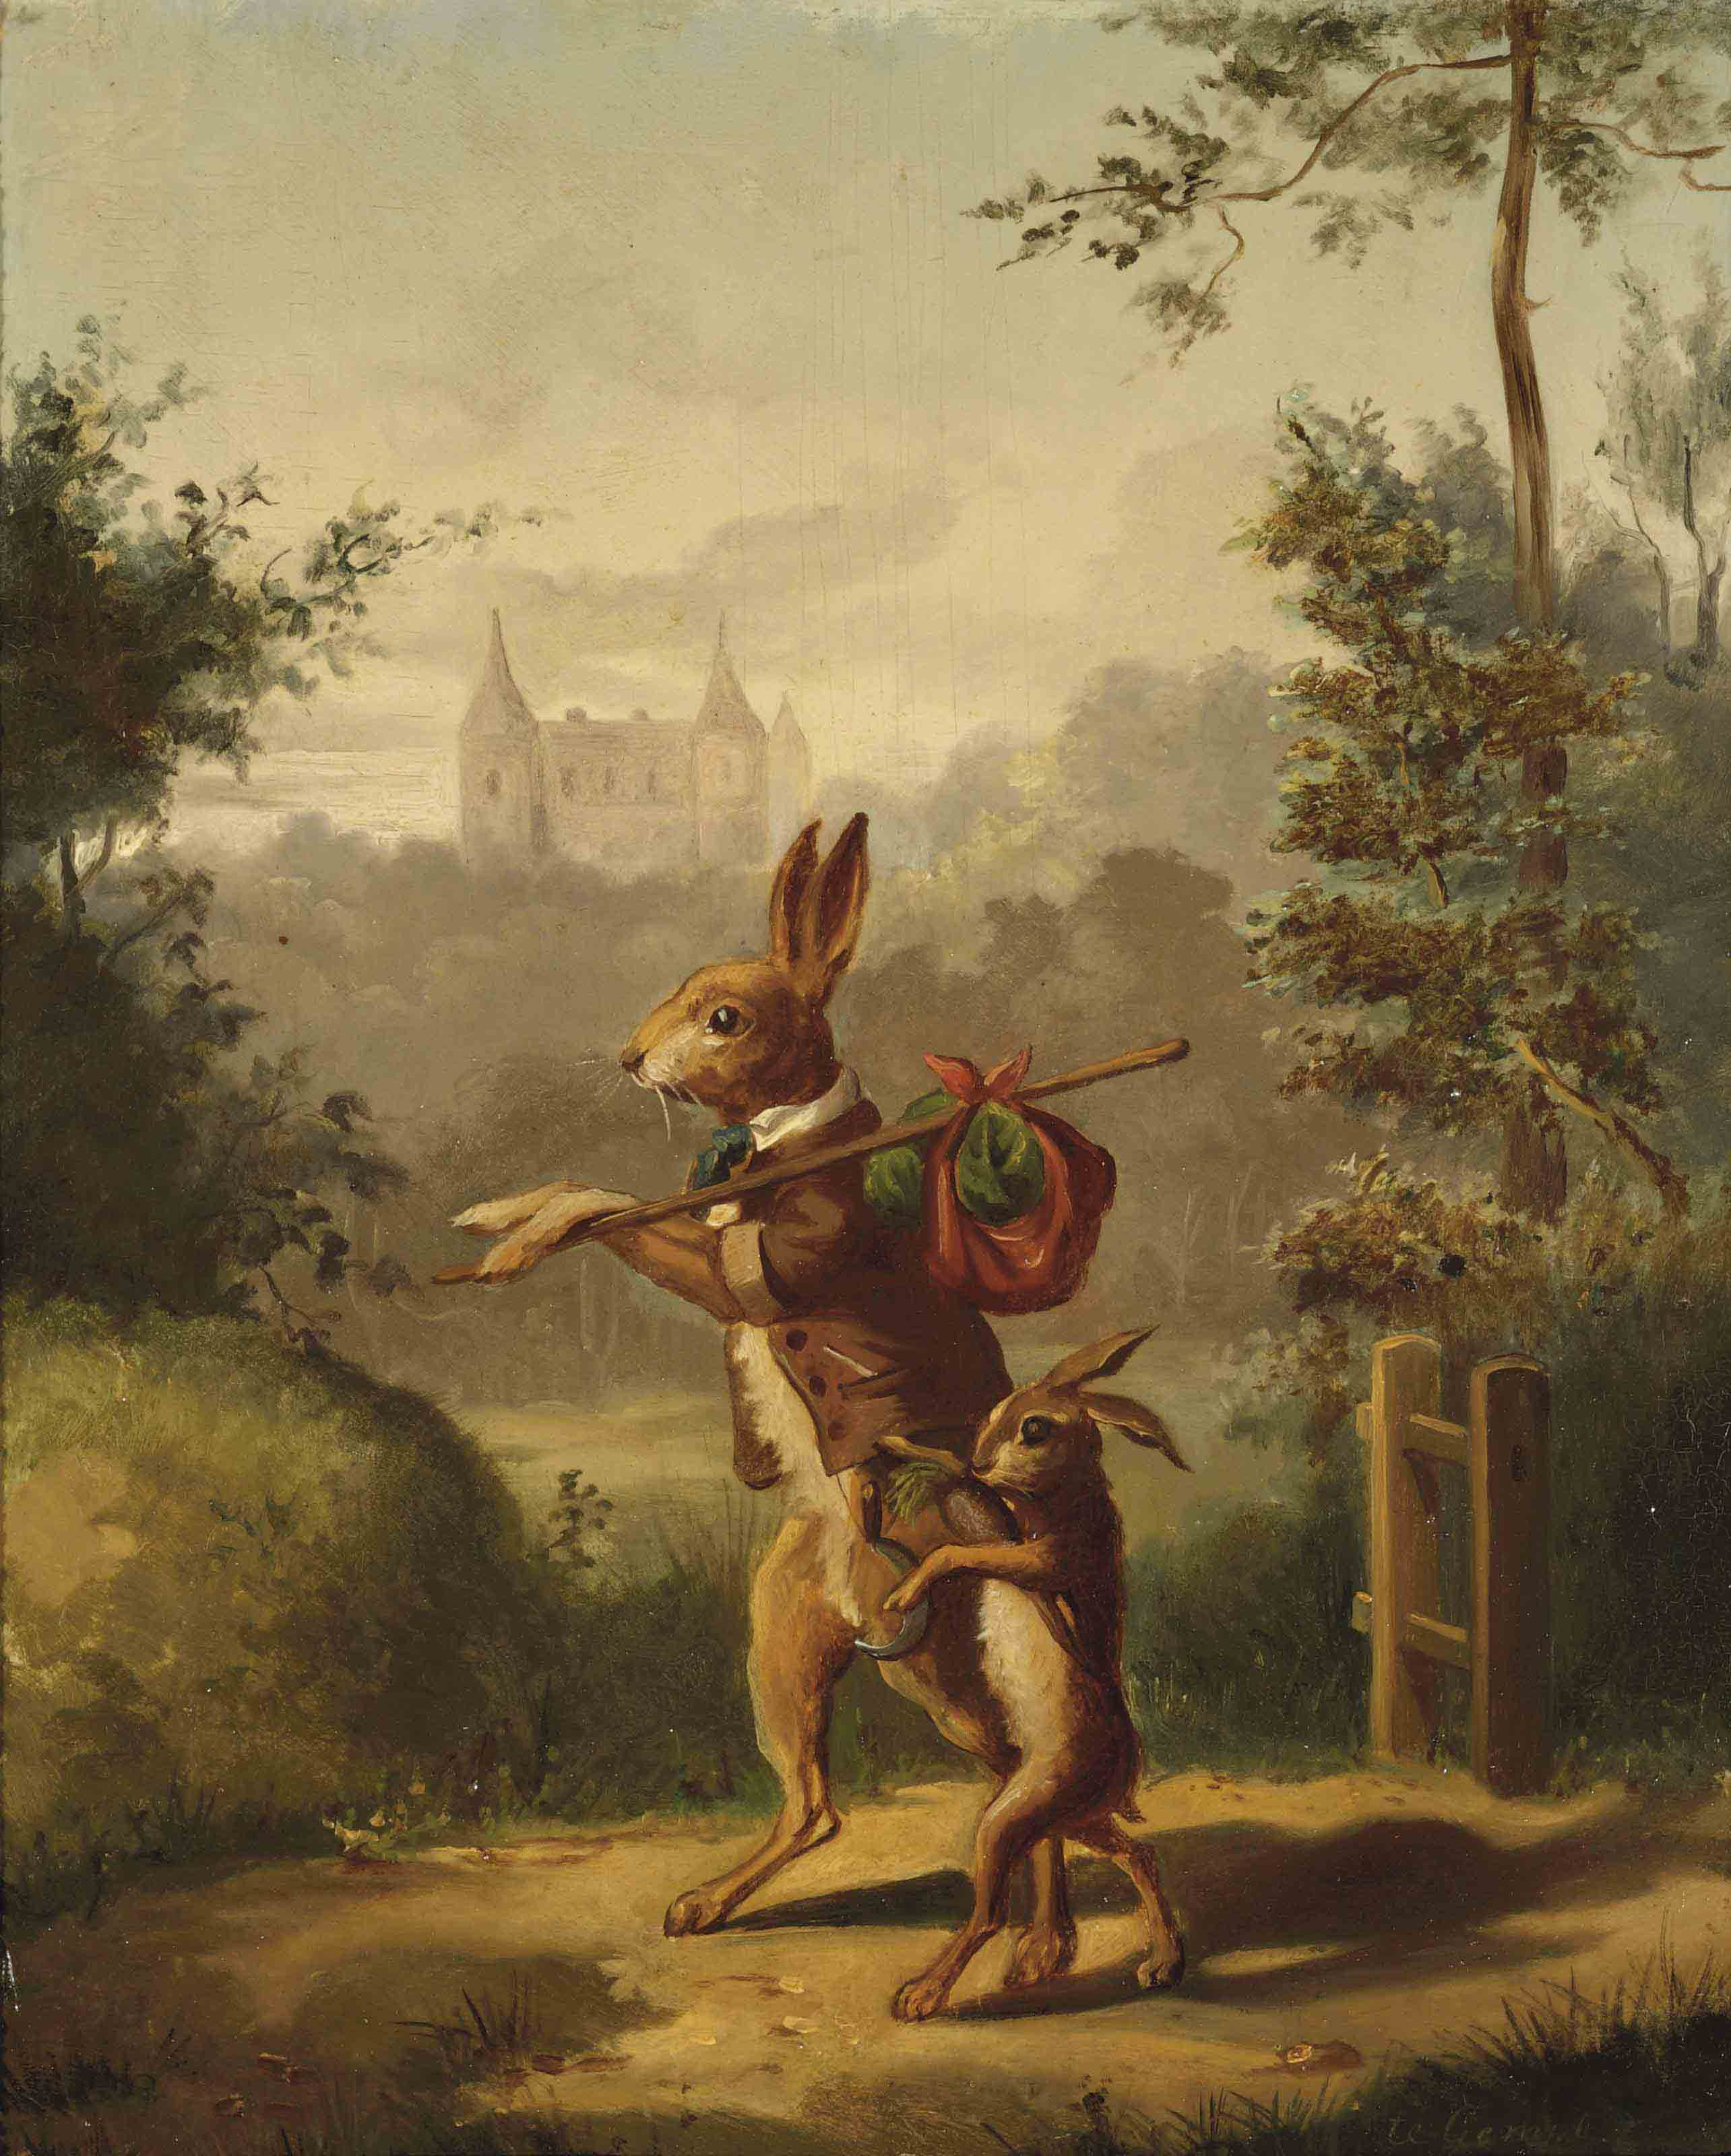 Two hares with a knapsack, a castle beyond